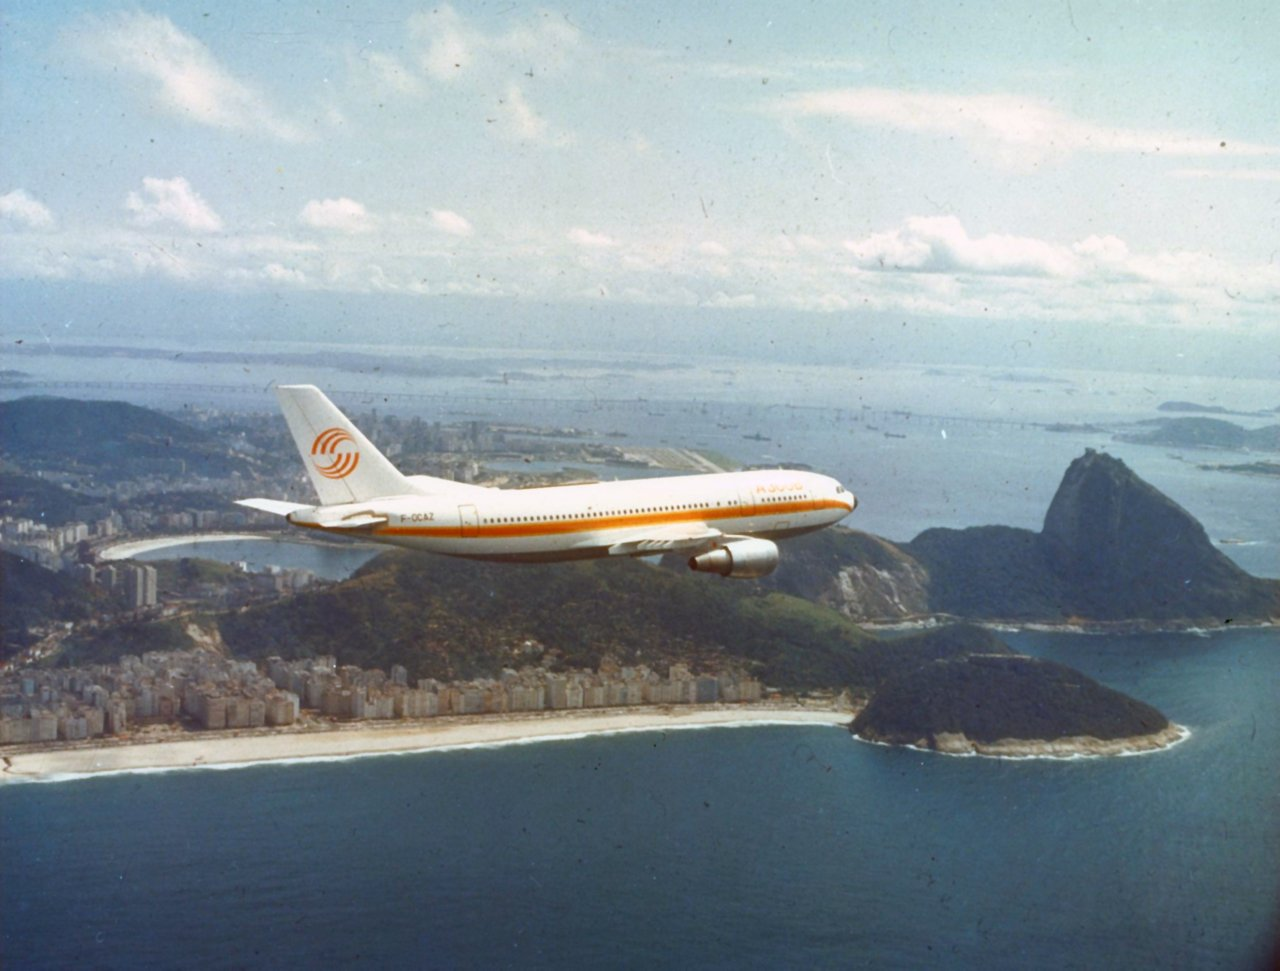 Airbus' first-ever demonstration tour to Latin America occurred in 1973 with the company's original A300B jetliner.  This aircraft is shown in a fly-by of Rio de Janeiro – nearly 40 years prior to the A380's demonstration tour of the region in March 2012